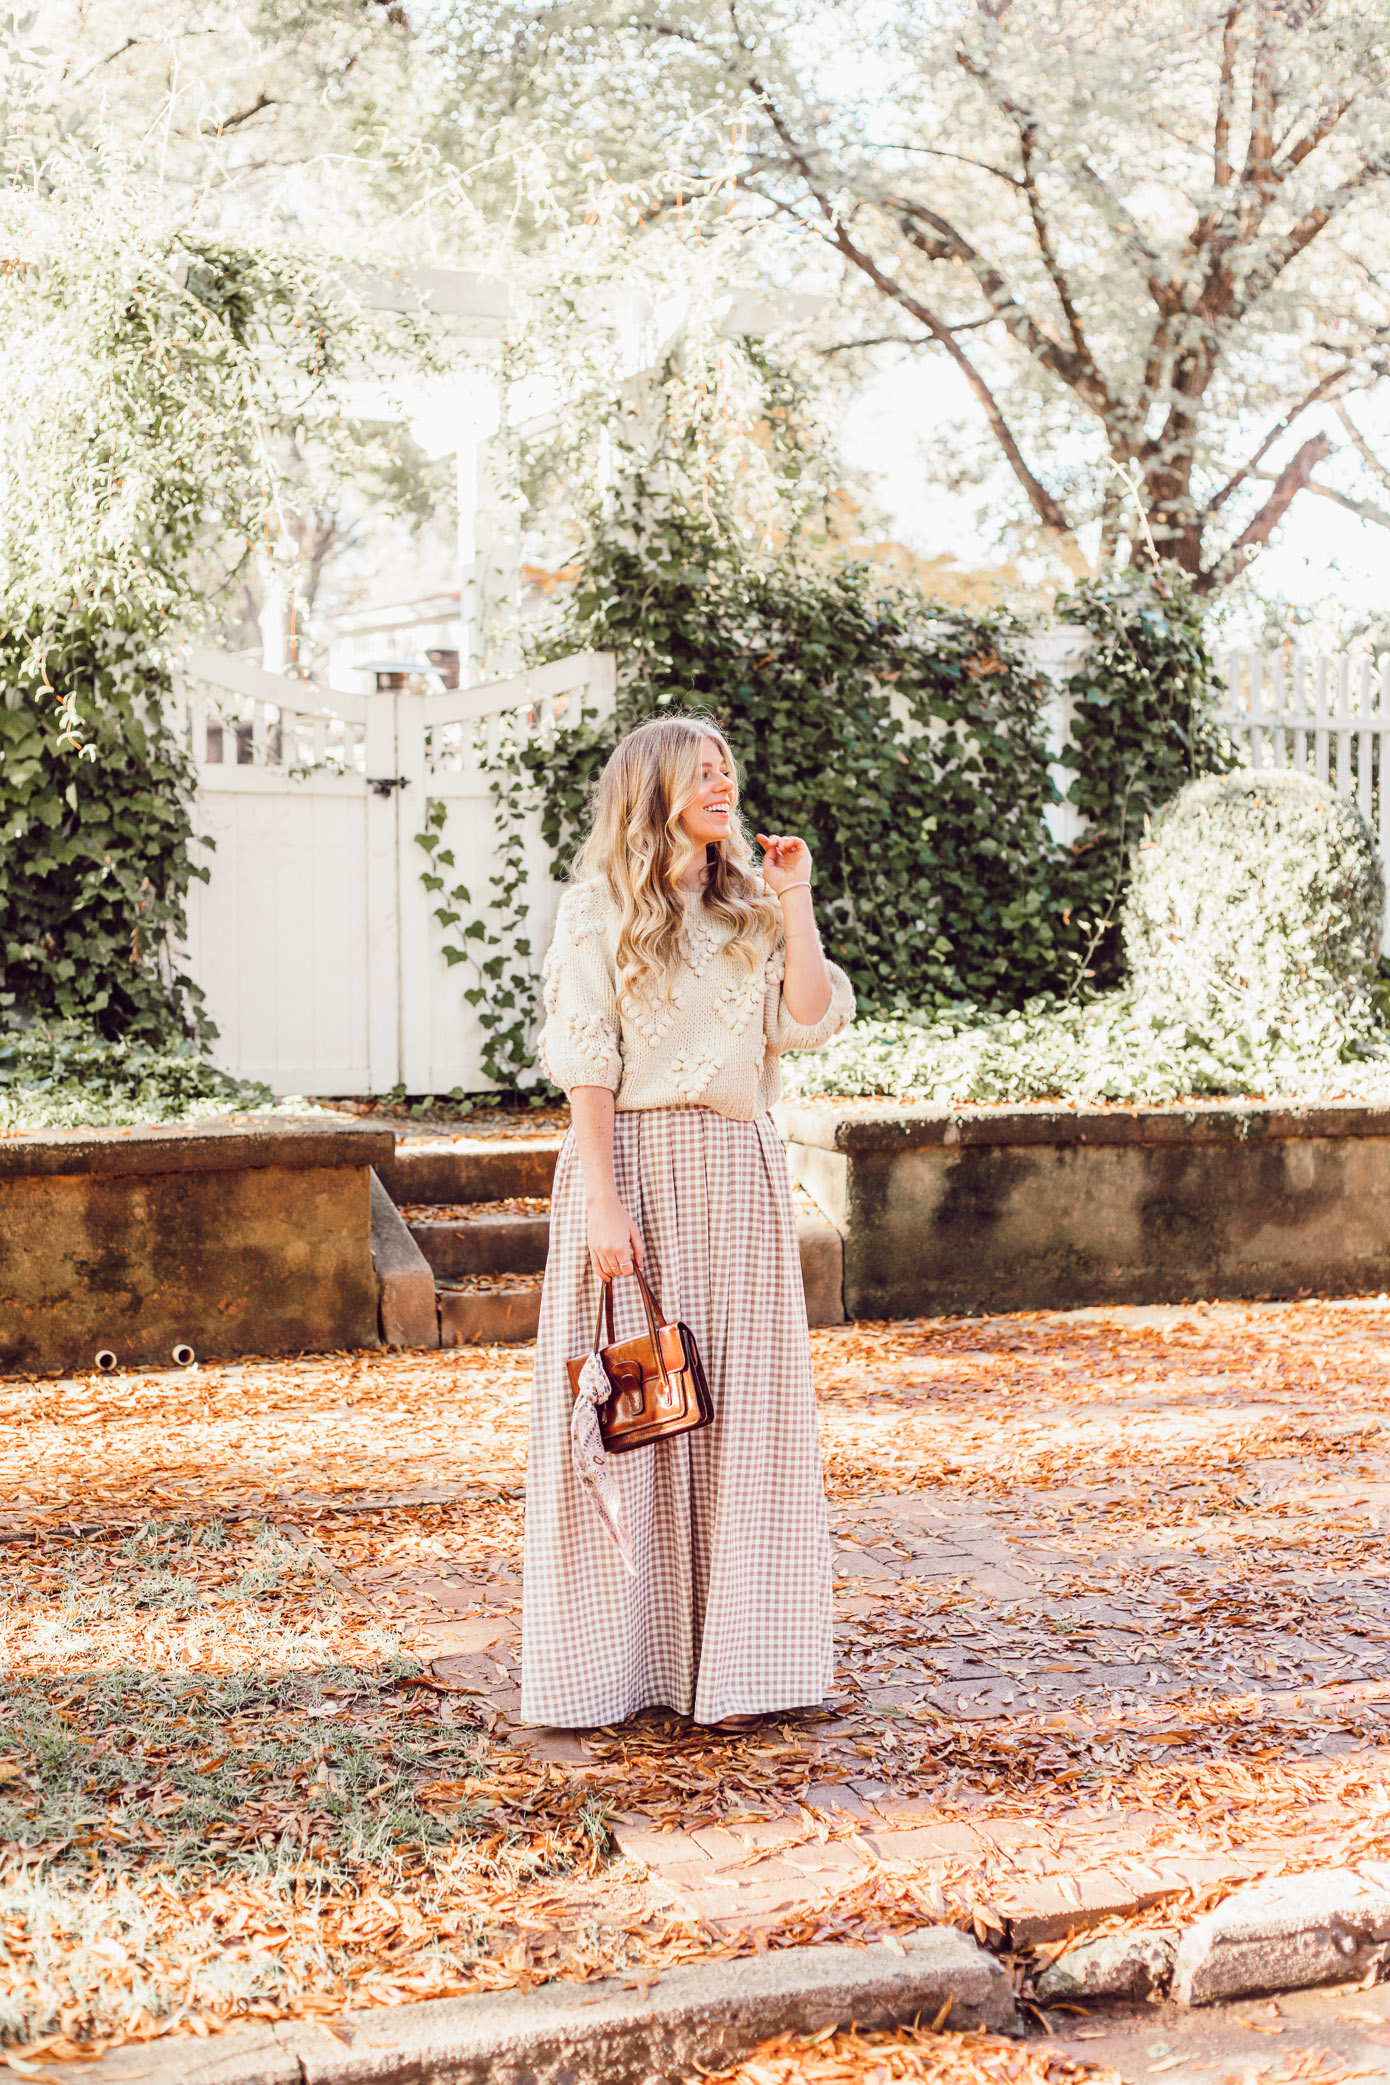 Spice Up Your Winter Date Night Look with a Winter Maxi Skirt featured on Louella Reese | Gingham Maxi Skirt, Pommed Heart Sweater